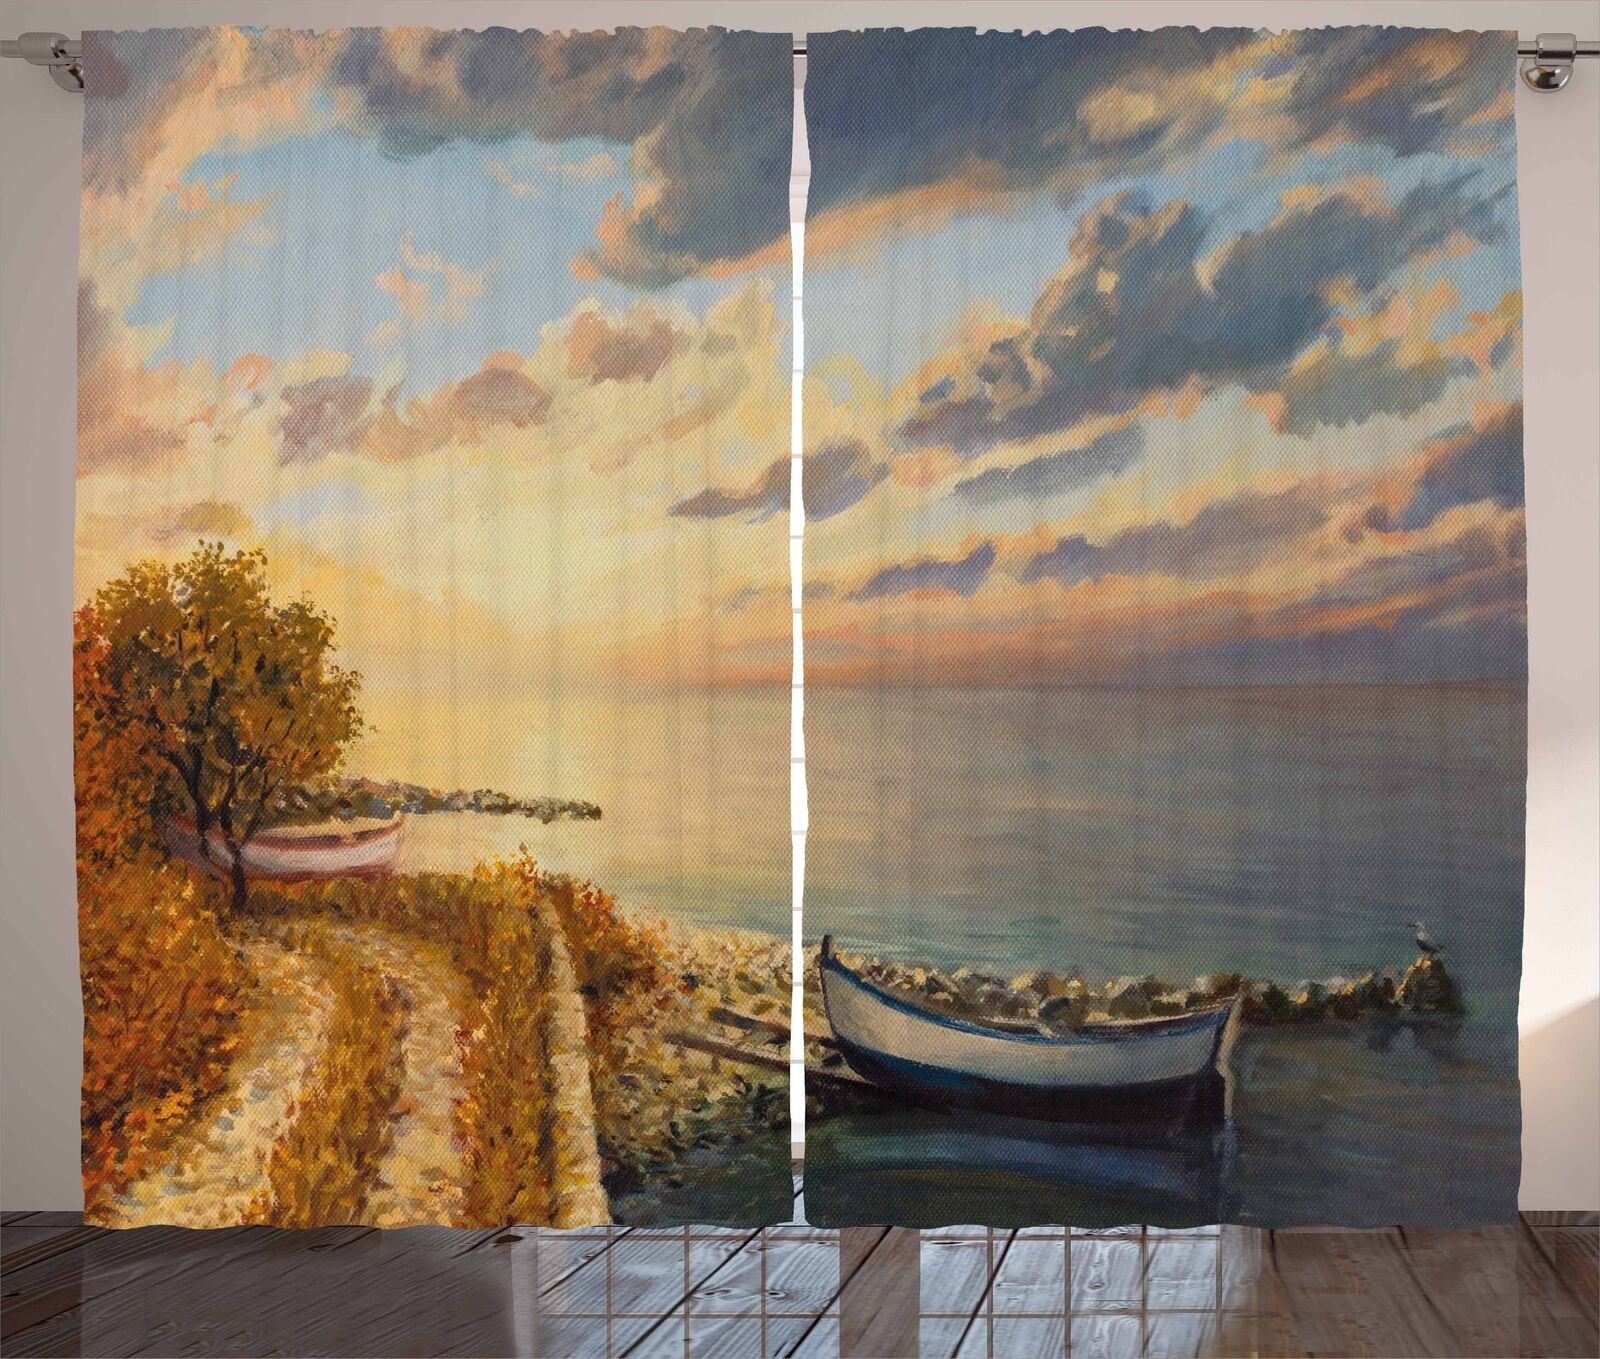 Art Curtains Curtains Curtains Romantic Sunrise by Sea Window Drapes 2 Panel Set 108x90 Inches e3df2e